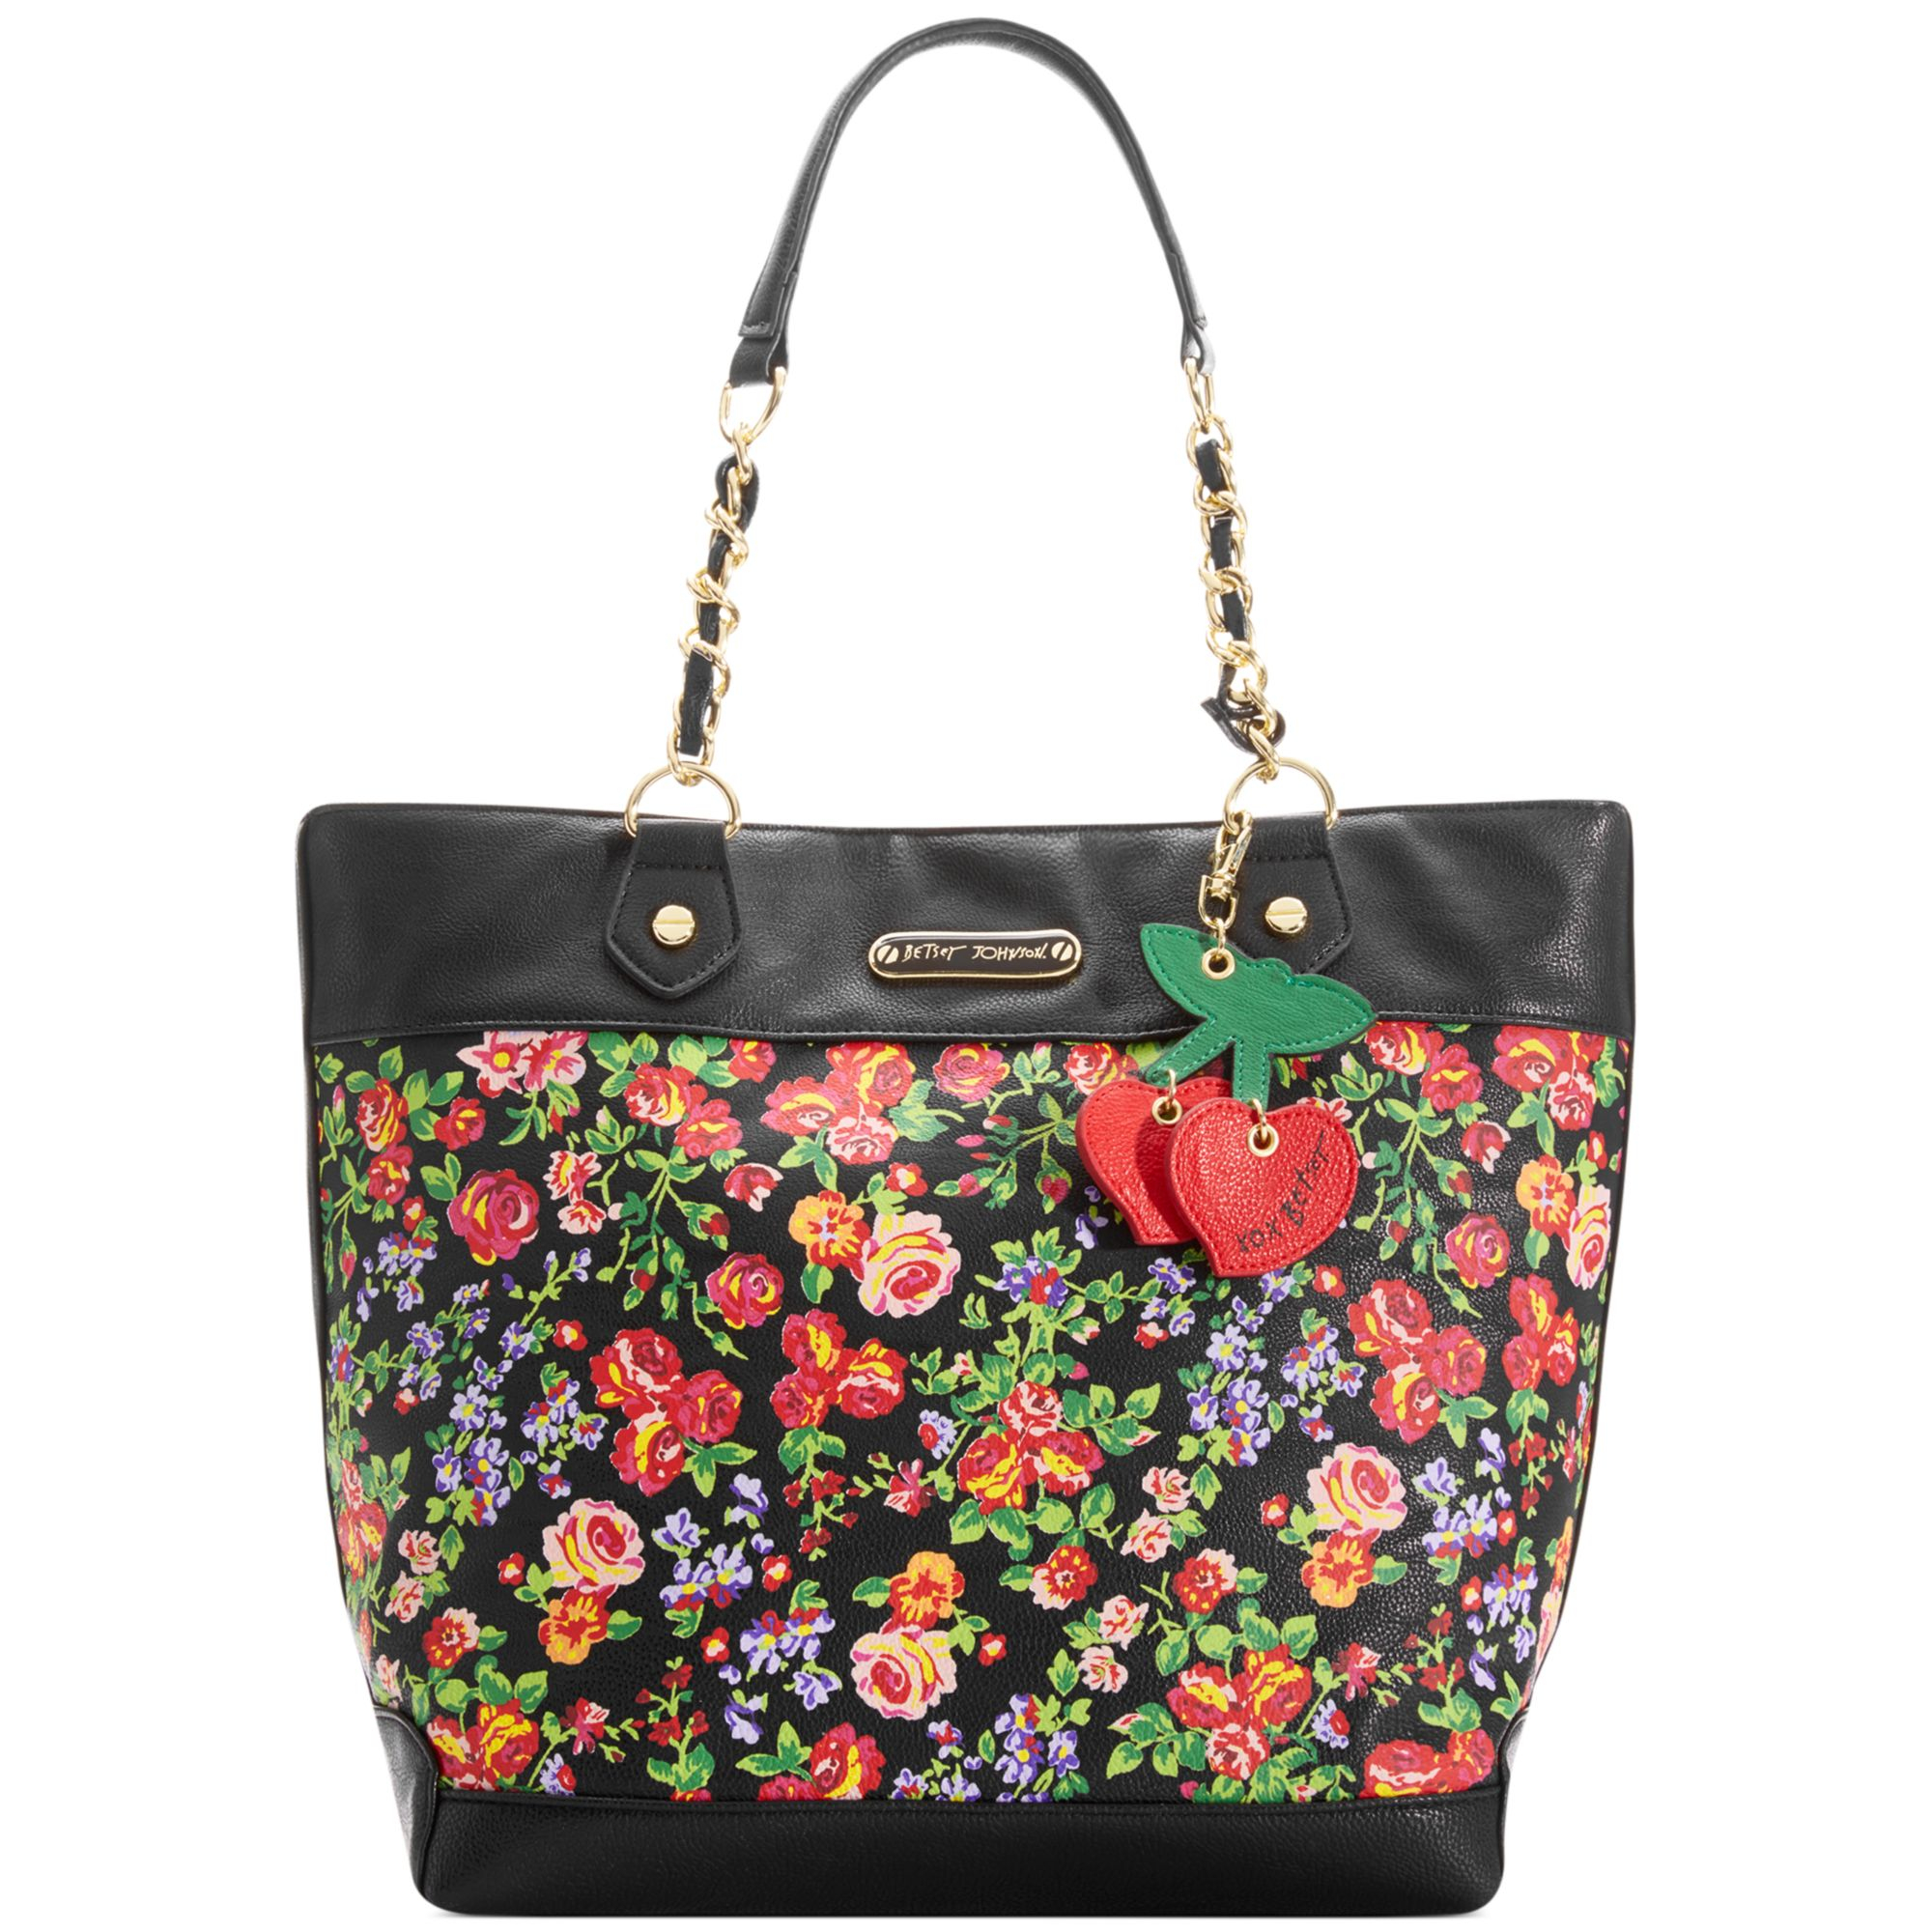 Betsey Johnson Macys Exclusive Tote | Lyst